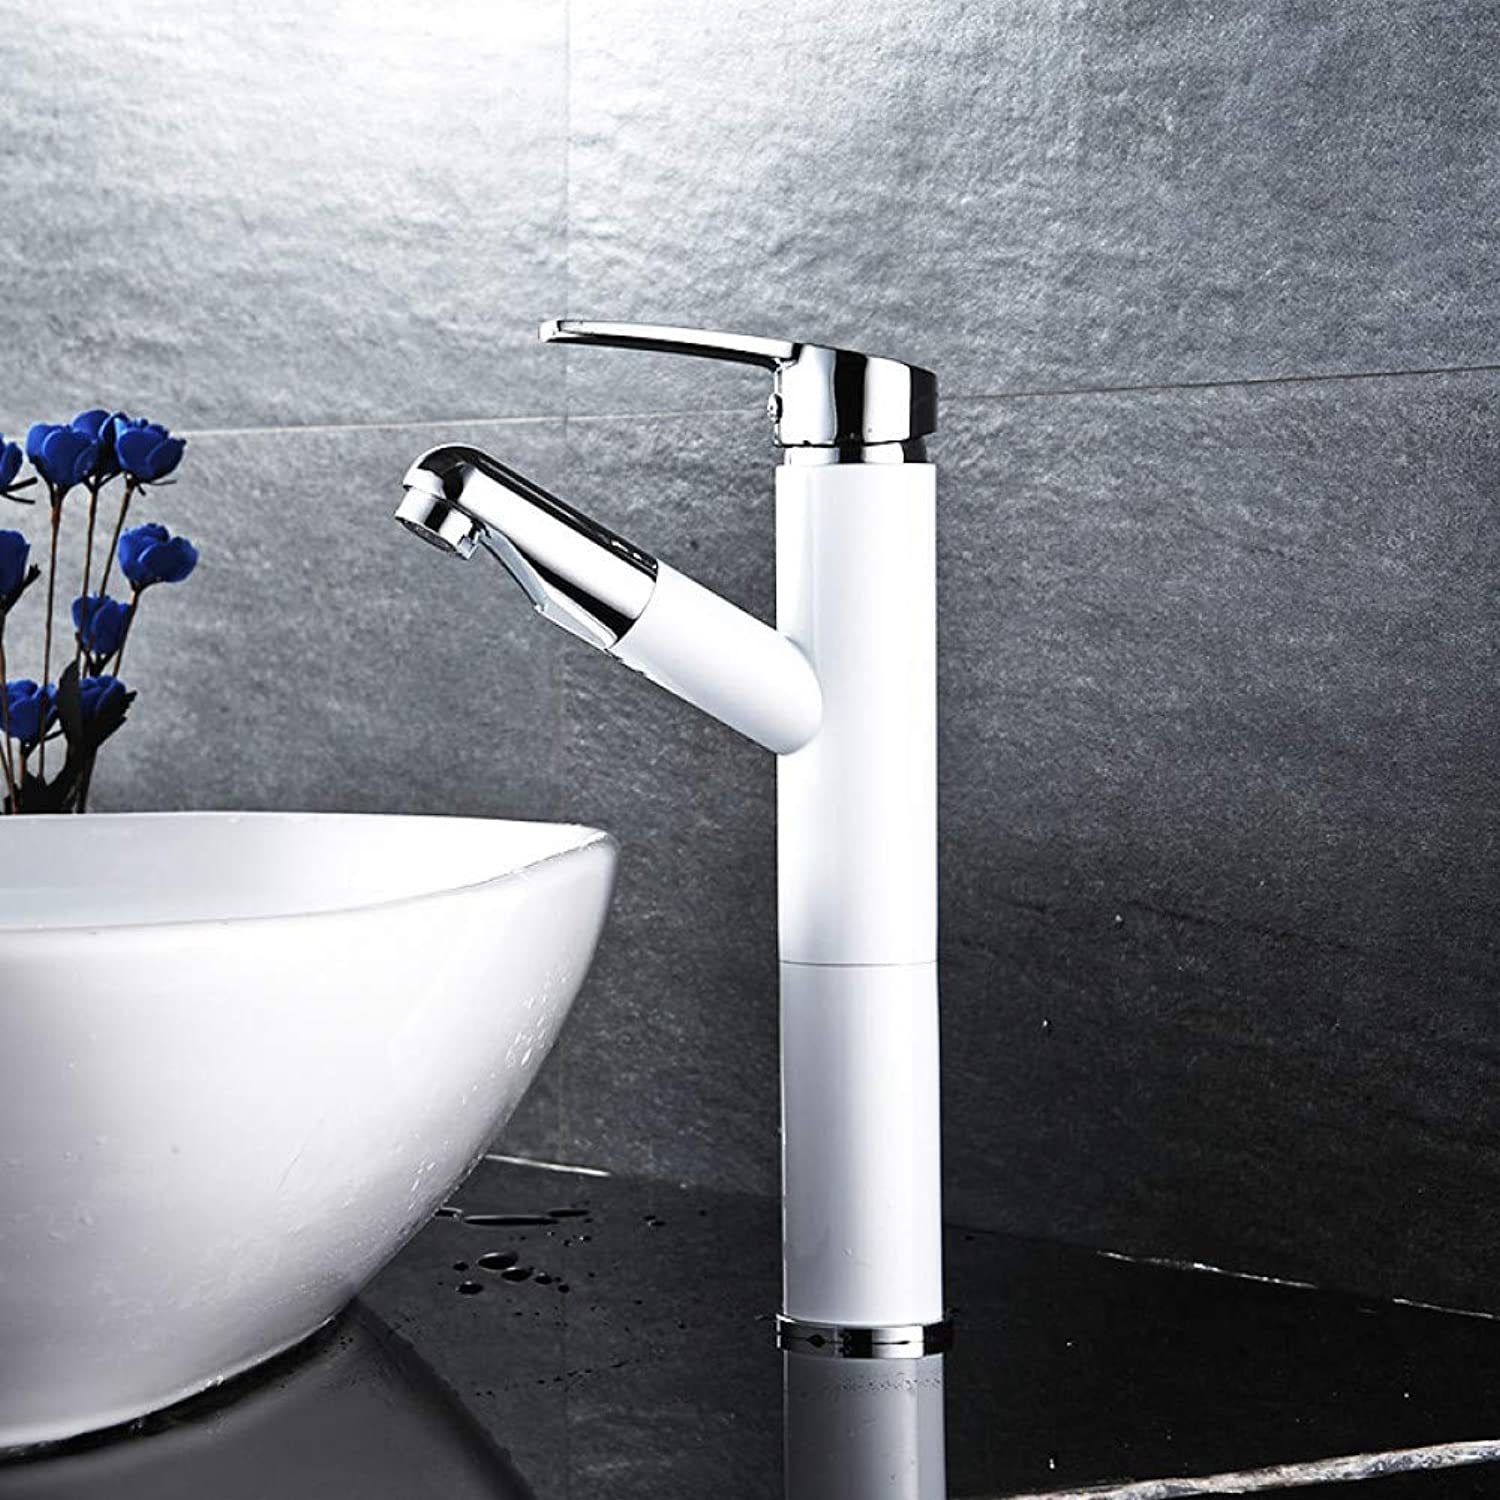 ZHFJGKR&ZL Solid Brass Water Tap Bathroom Basin Faucet Bathroom Tap Cold And Hot Bathroom Sink Faucet.WHITE